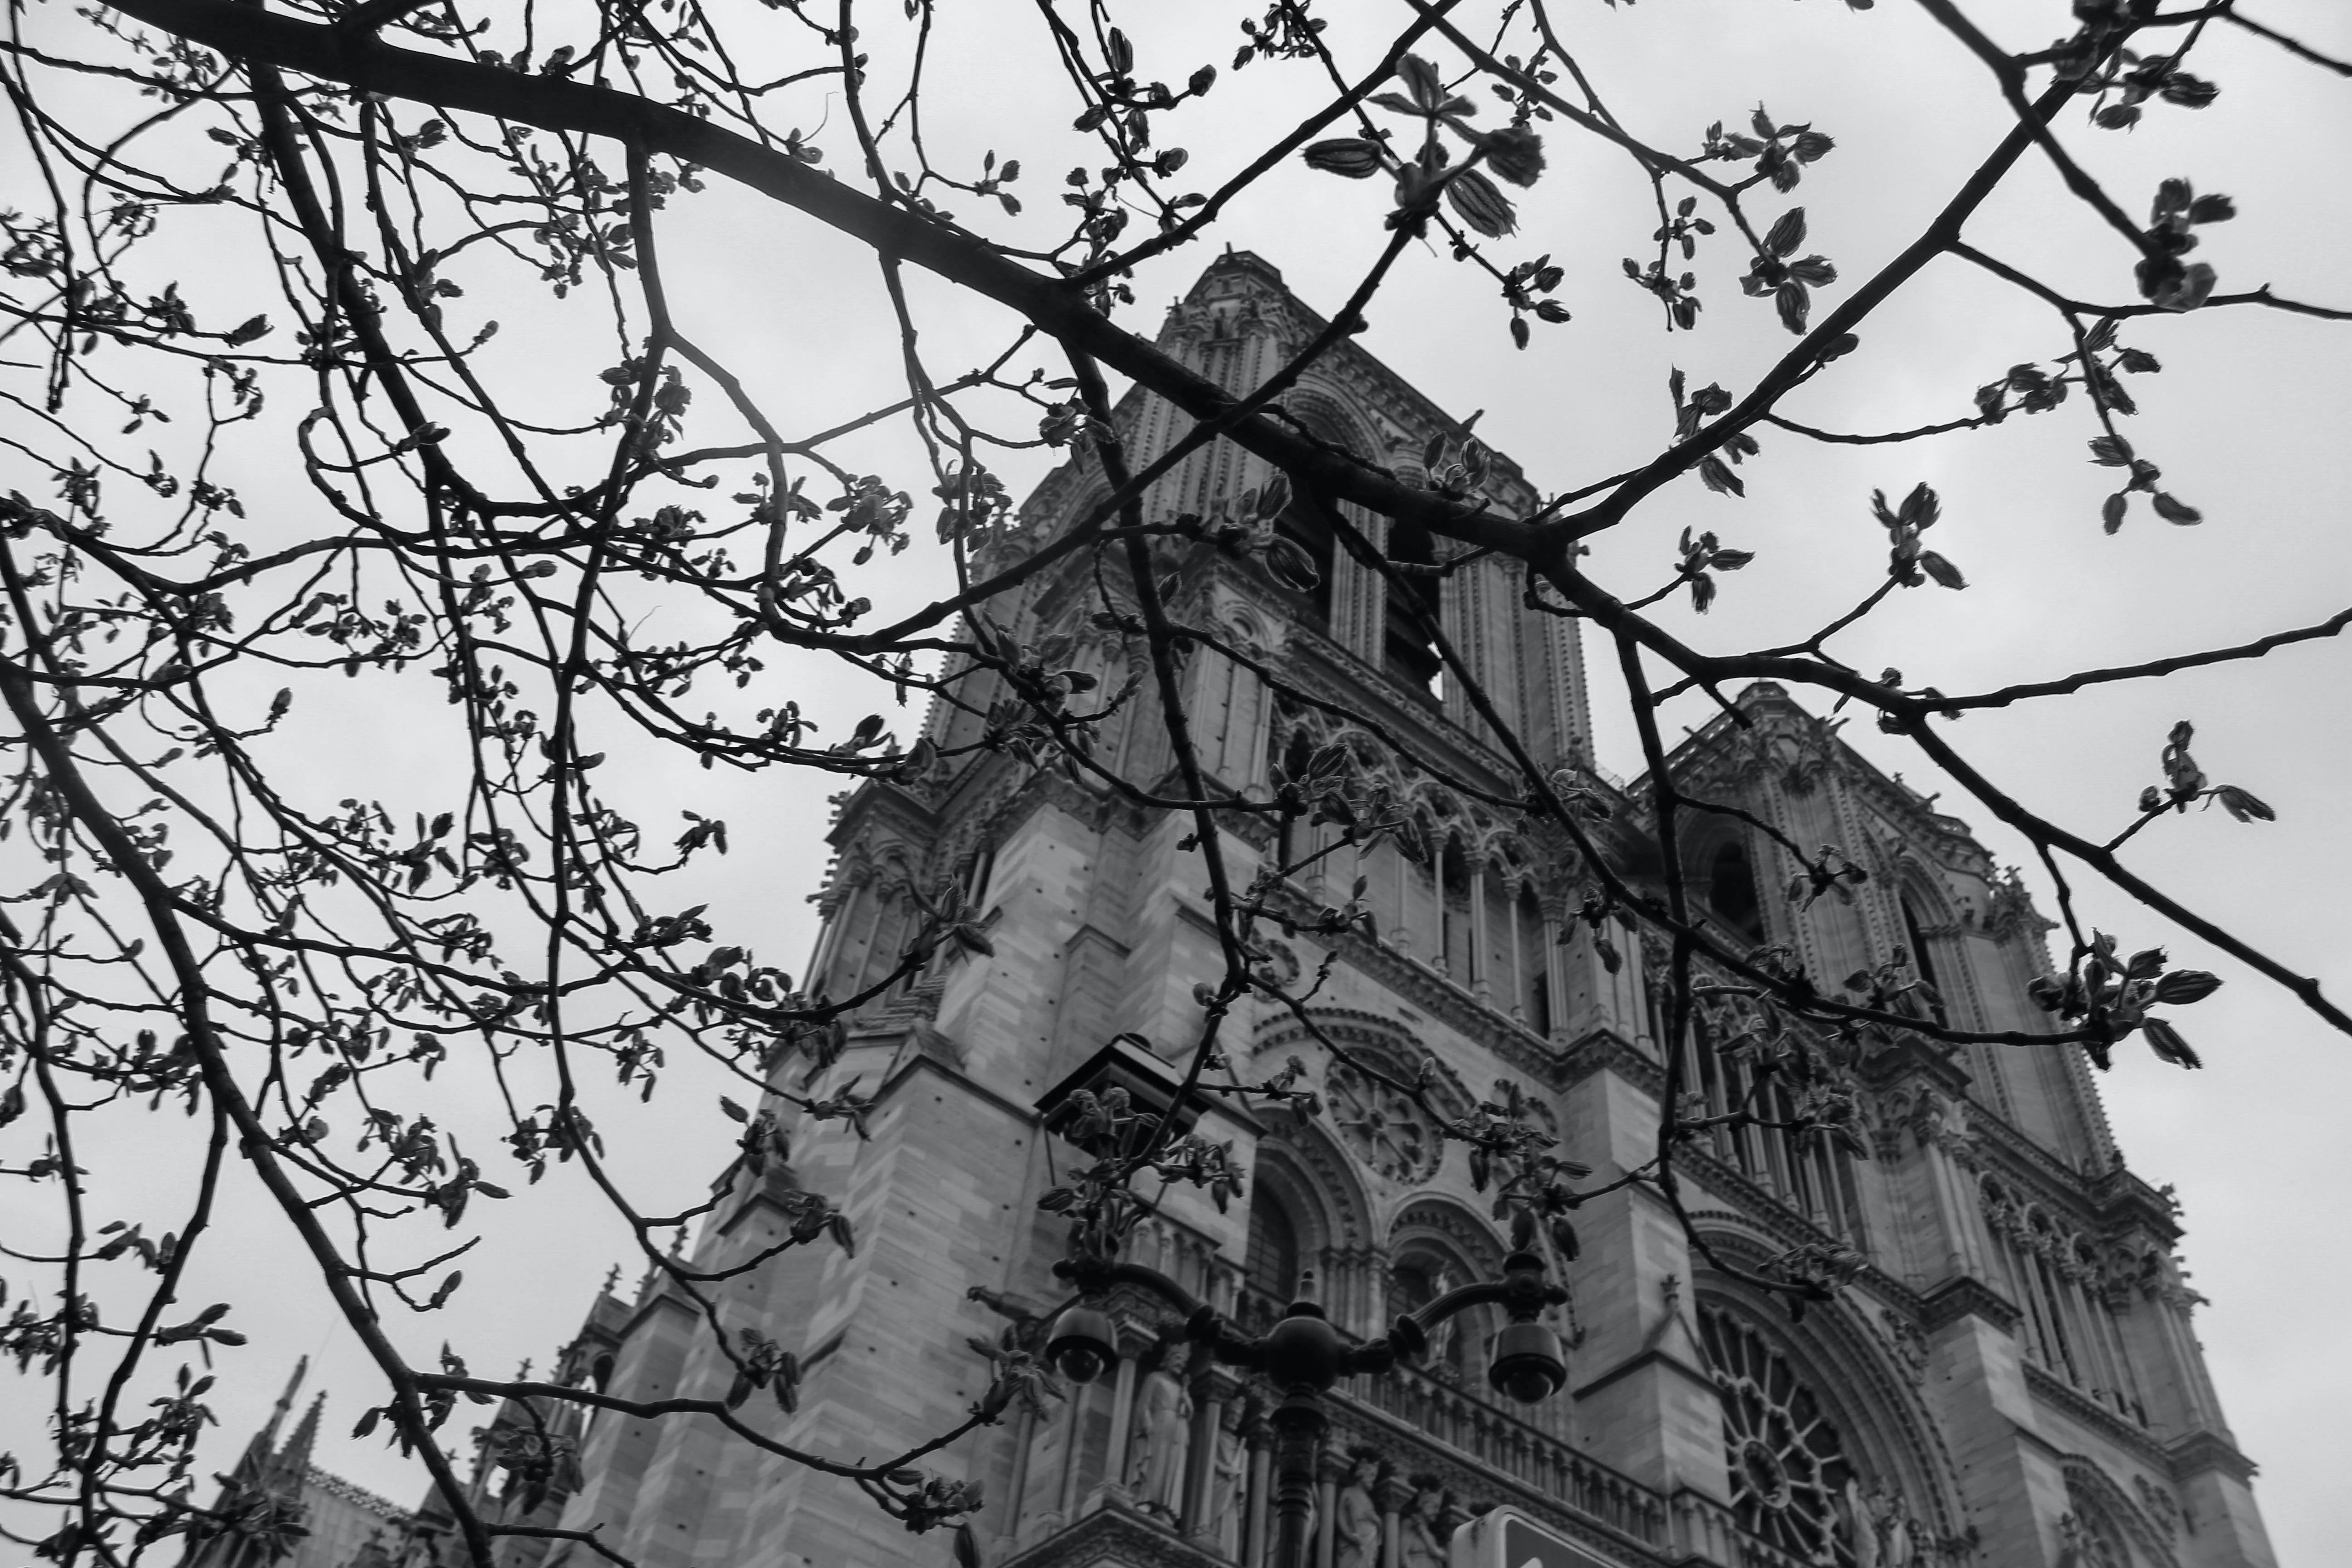 Free stock photo of black and white gothic hidden